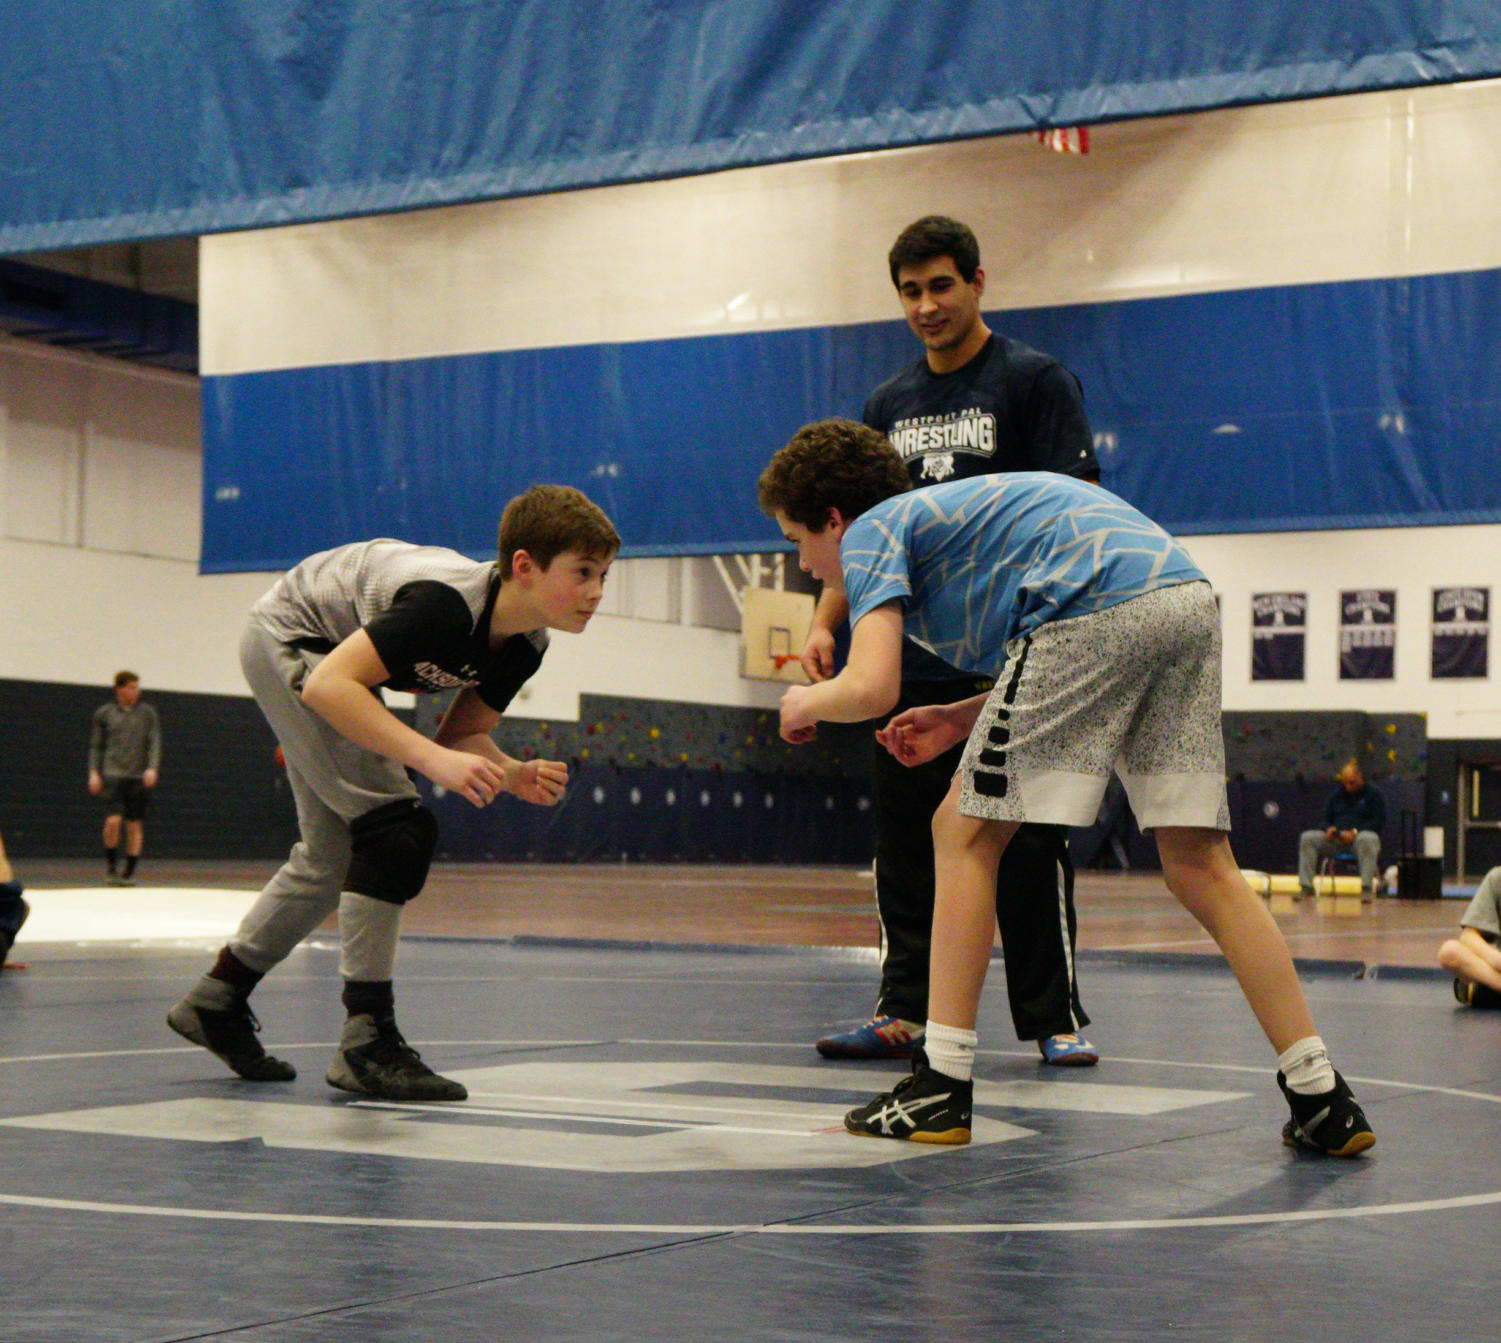 Charlie Iannone and another student wrestle under the watchful eye of P.A.L. Wrestling Coach Pallo.